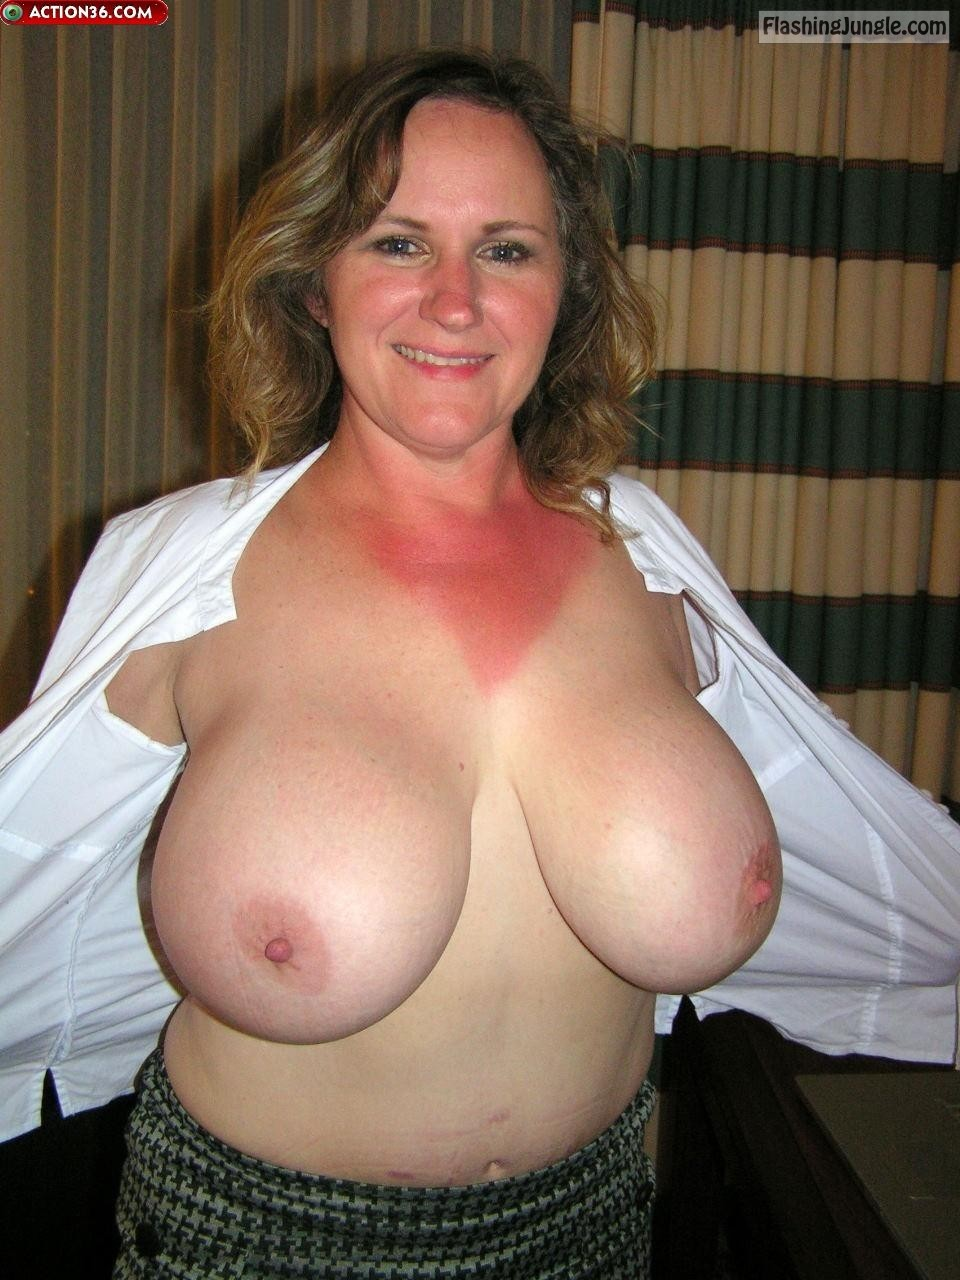 Kinky Milf Opens Up Her Dress Shirt And Shows Massive Tits